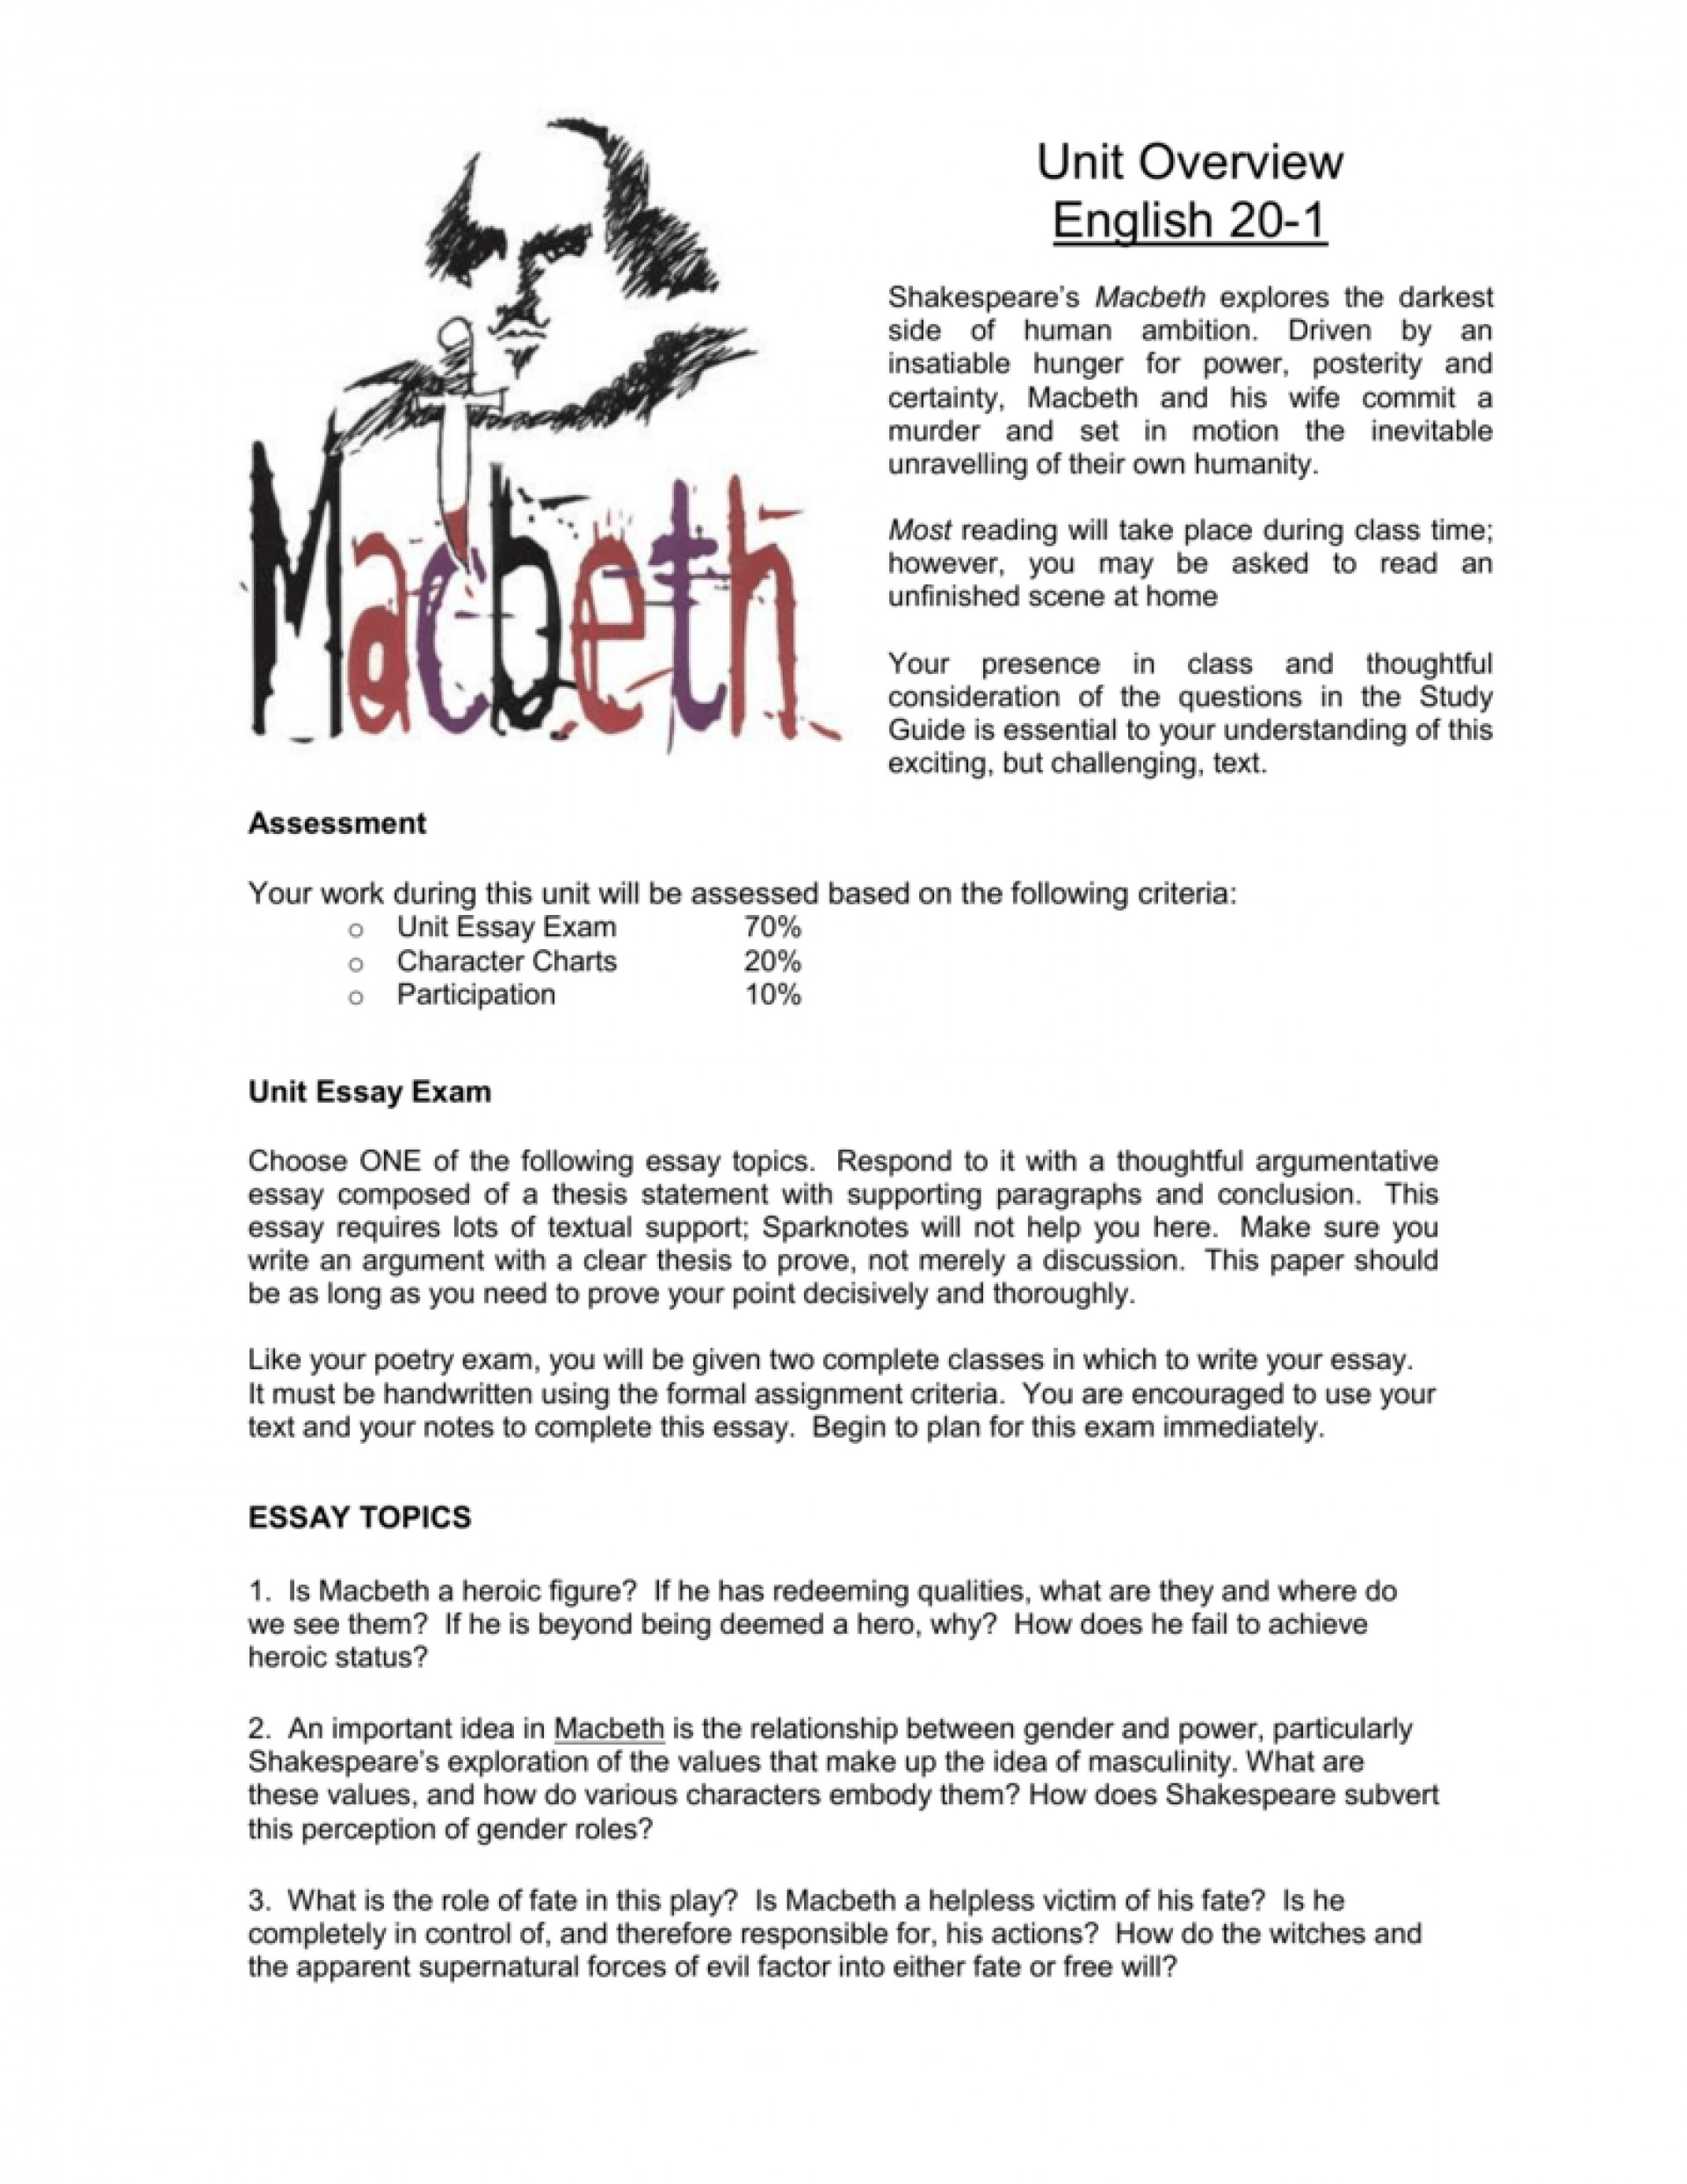 009 Essay Example 008041500 1 On Marvelous Macbeth And Lady Macbeth's Relationship Literary As A Tragic Hero Plan 1920